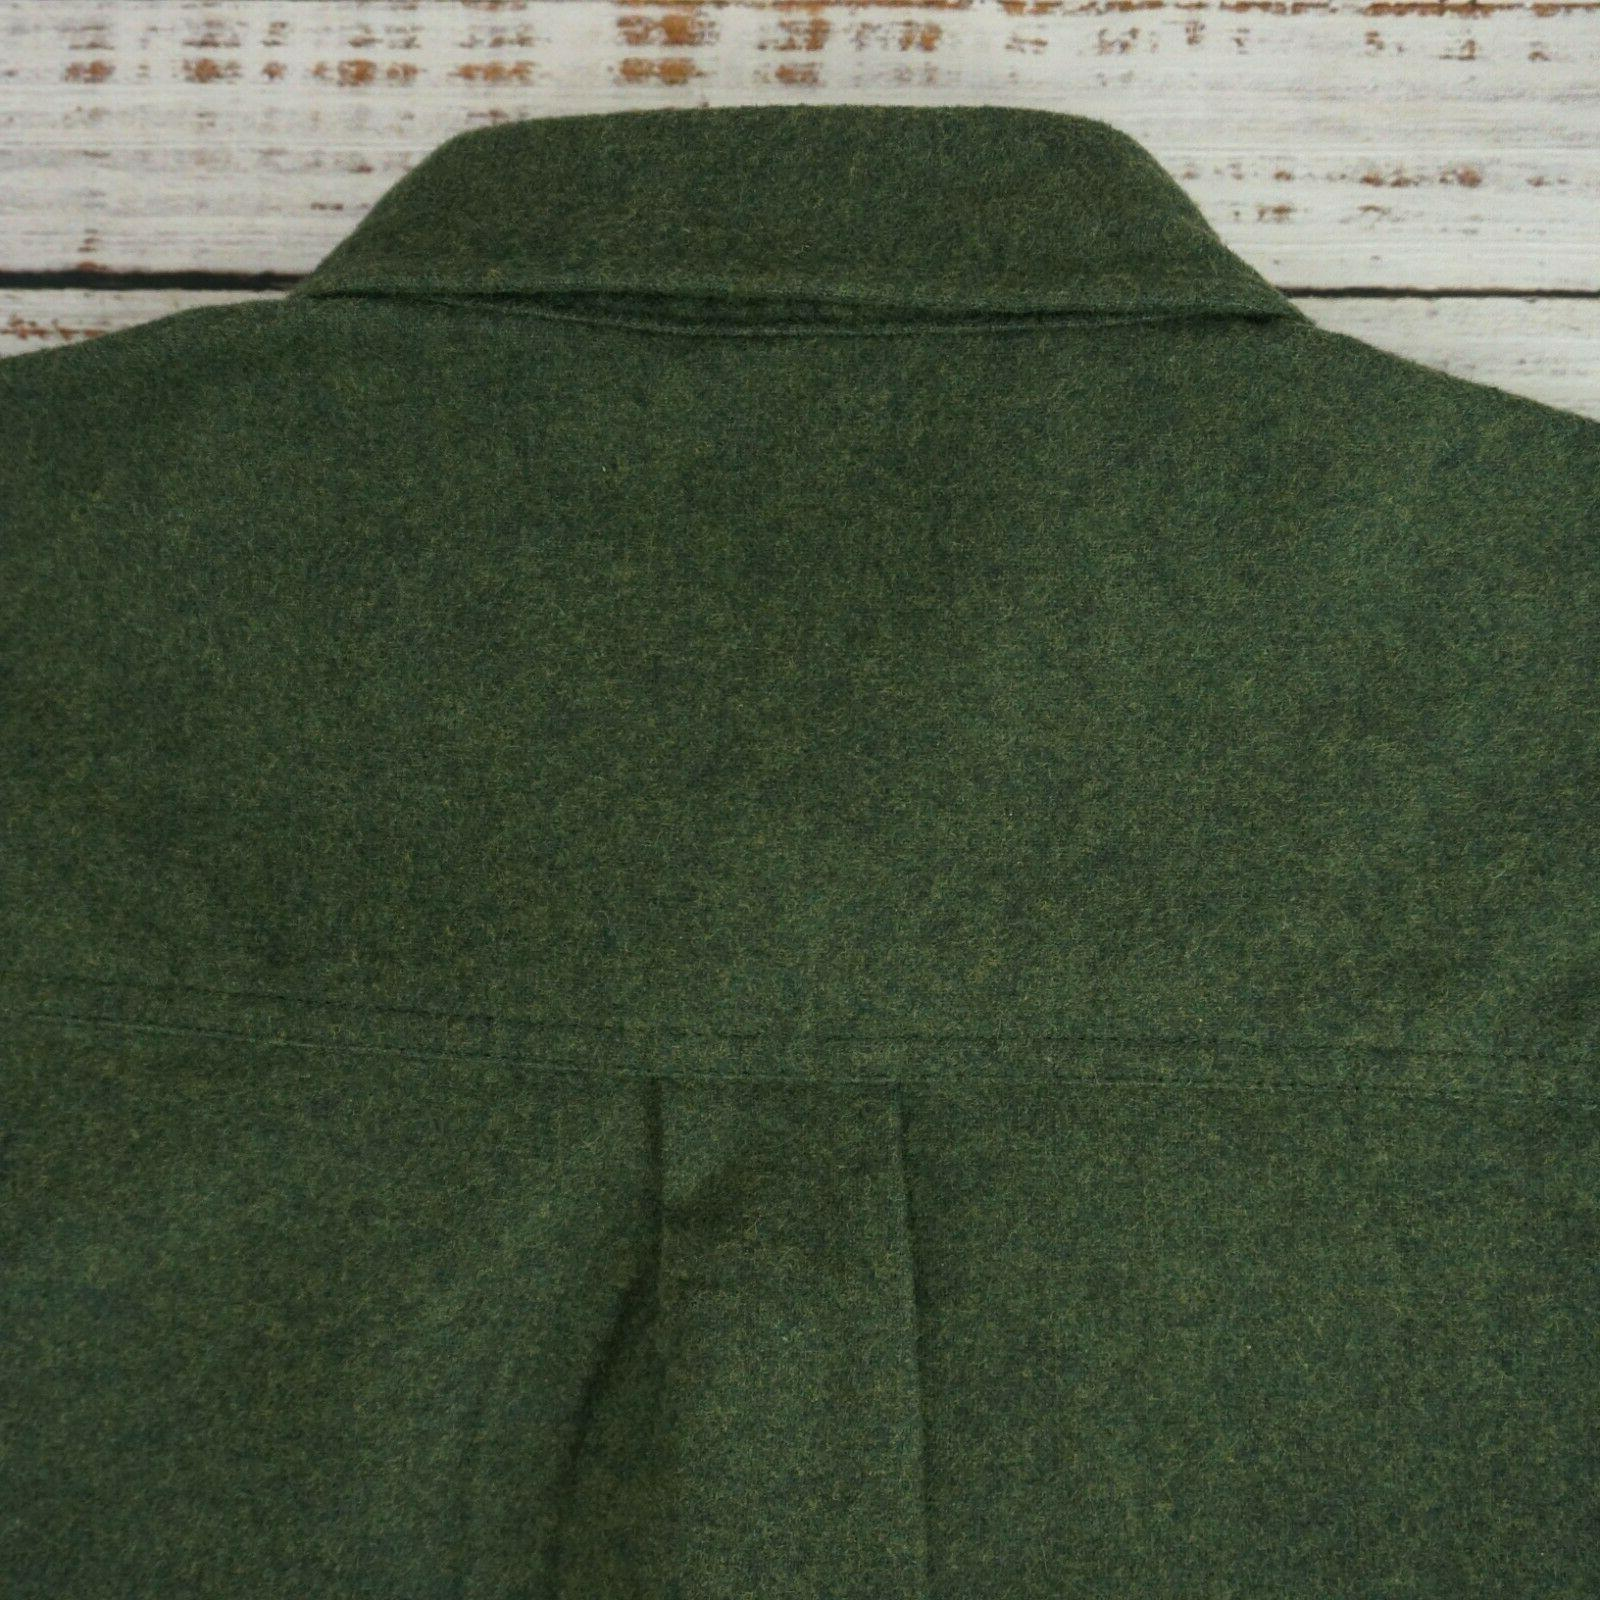 Field Stream Chamois Shirt Loden Green